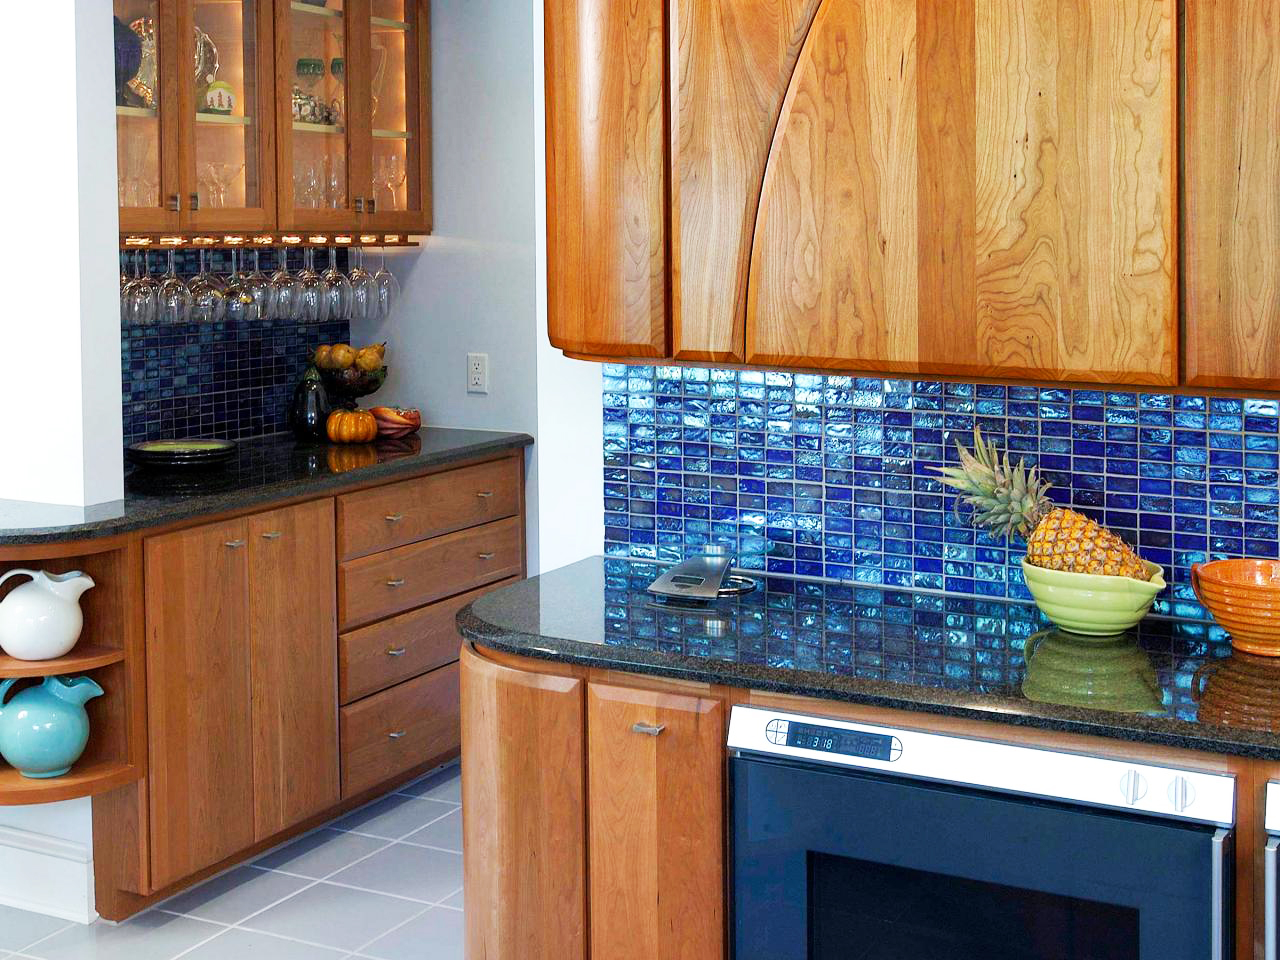 Cost to remodel kitchen backsplash designs roy home design for Backsplash designs for small kitchen